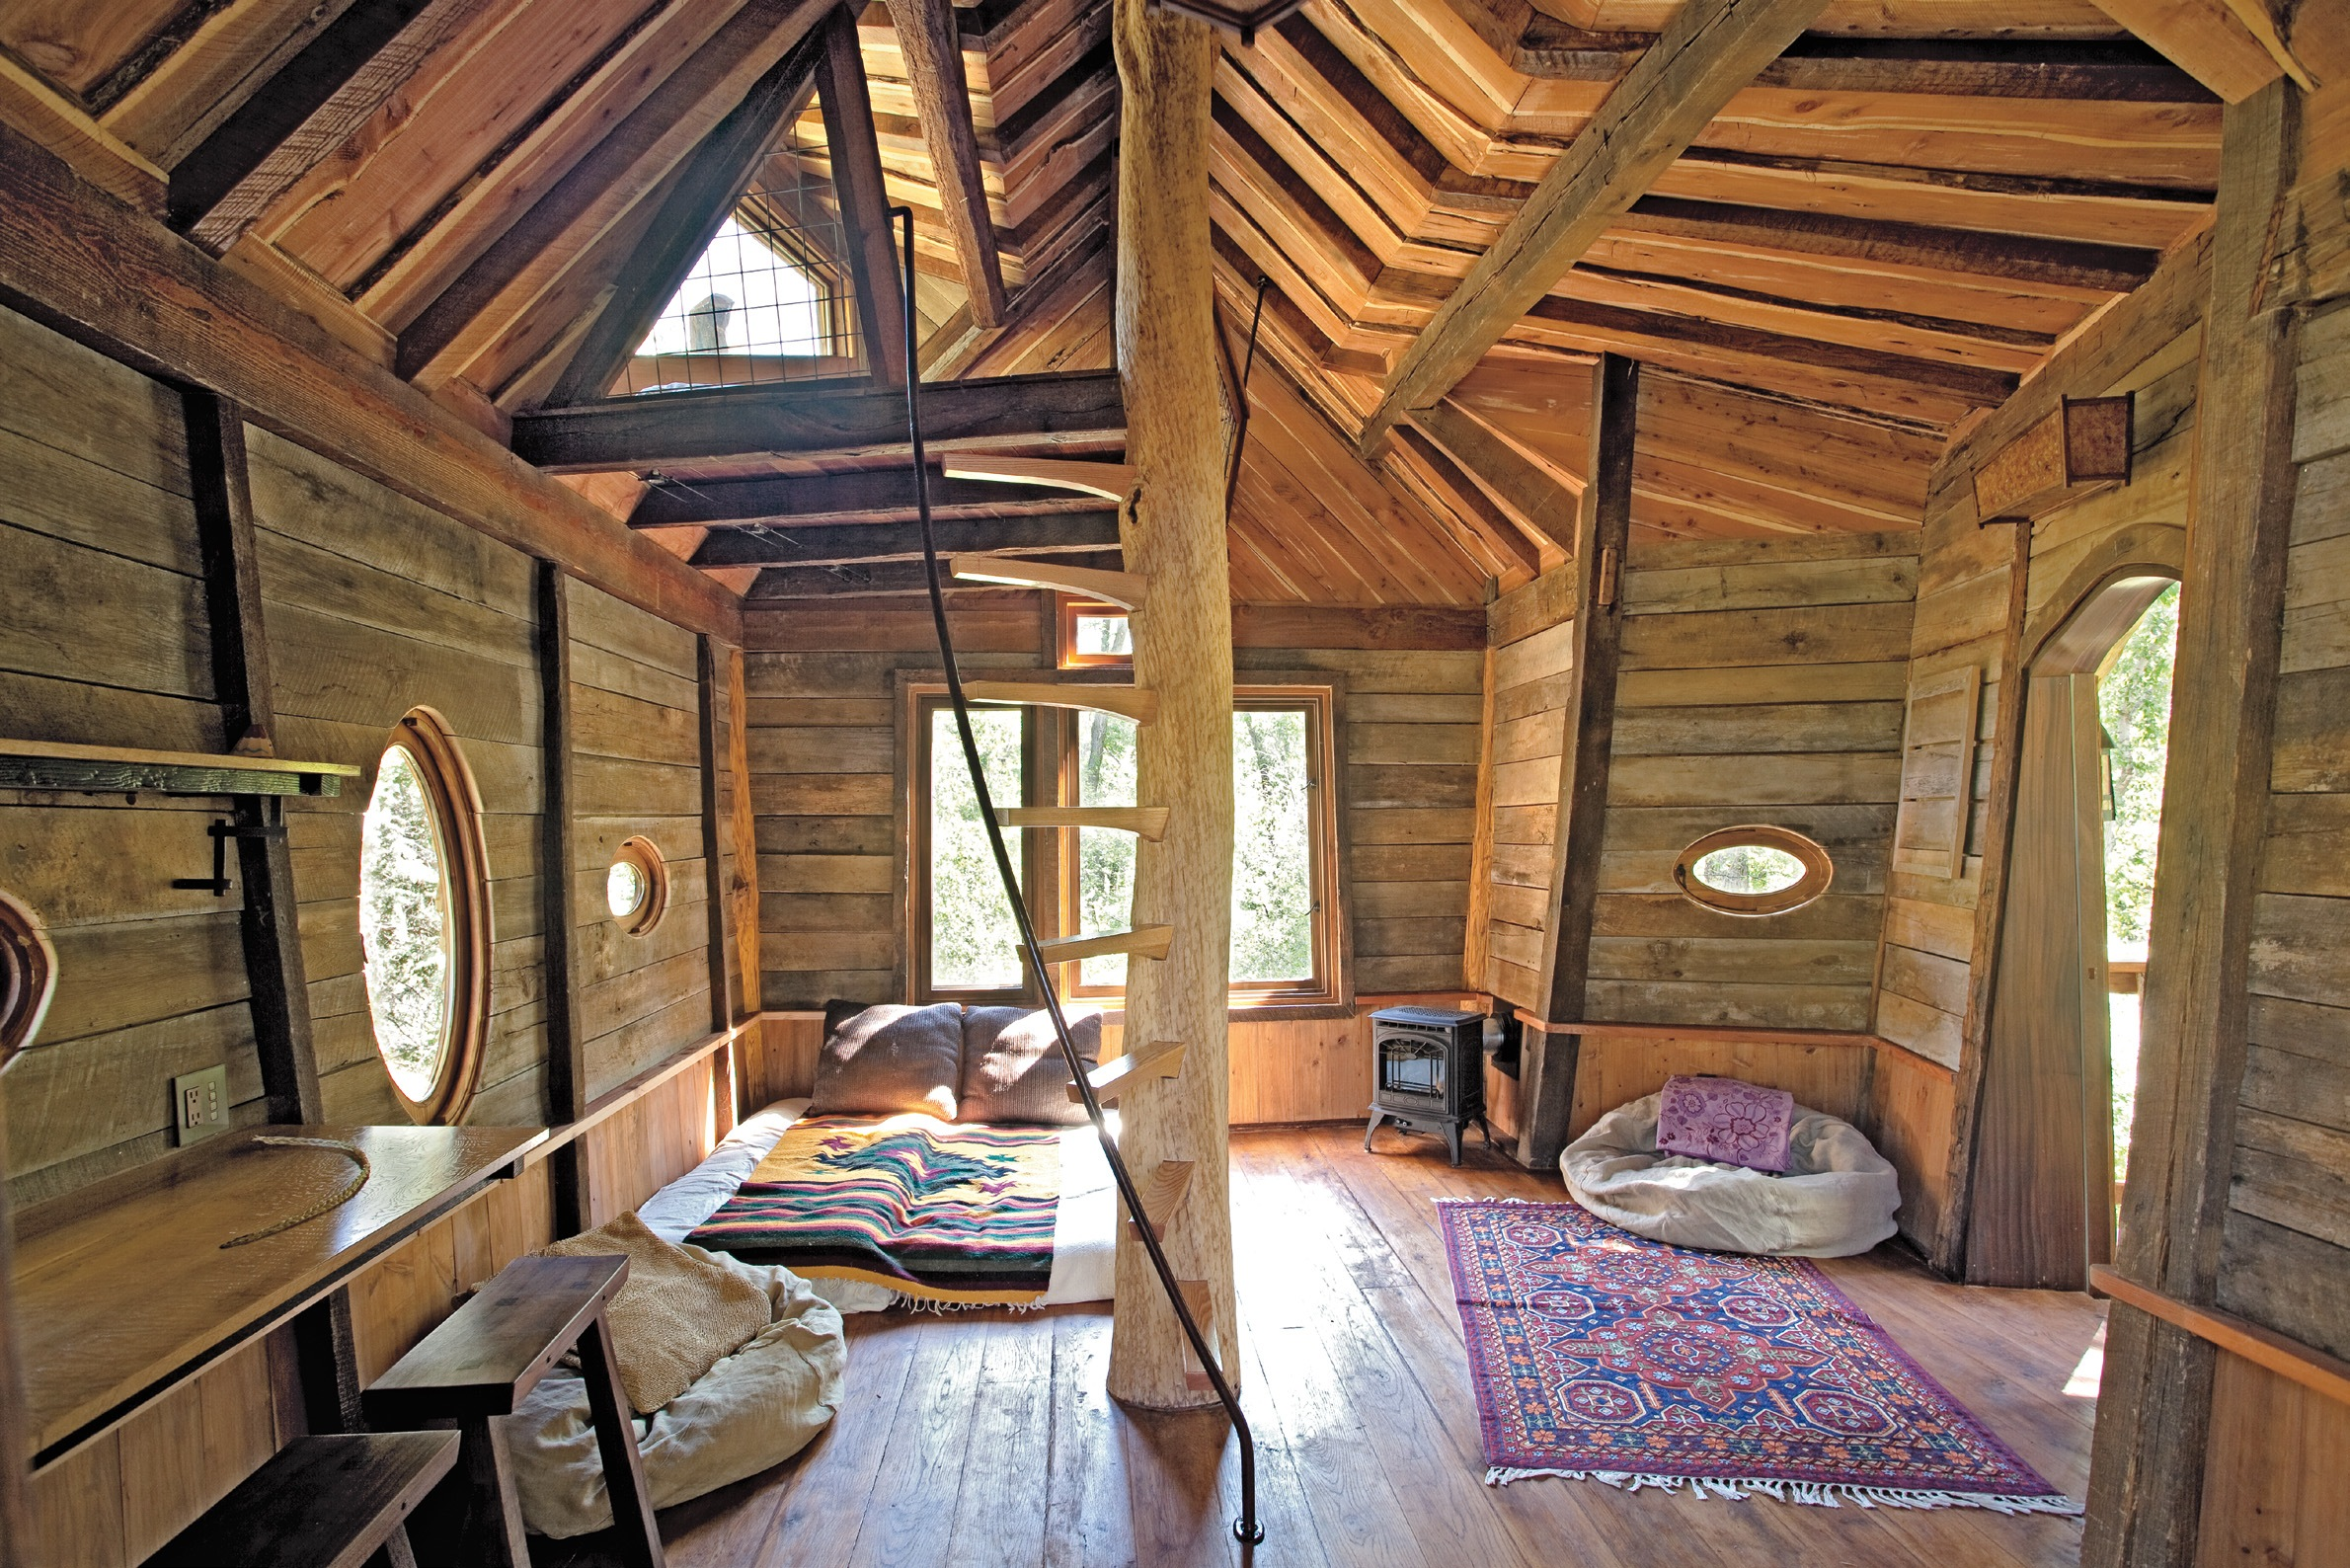 Small Homes Interior Th 152 153 Image